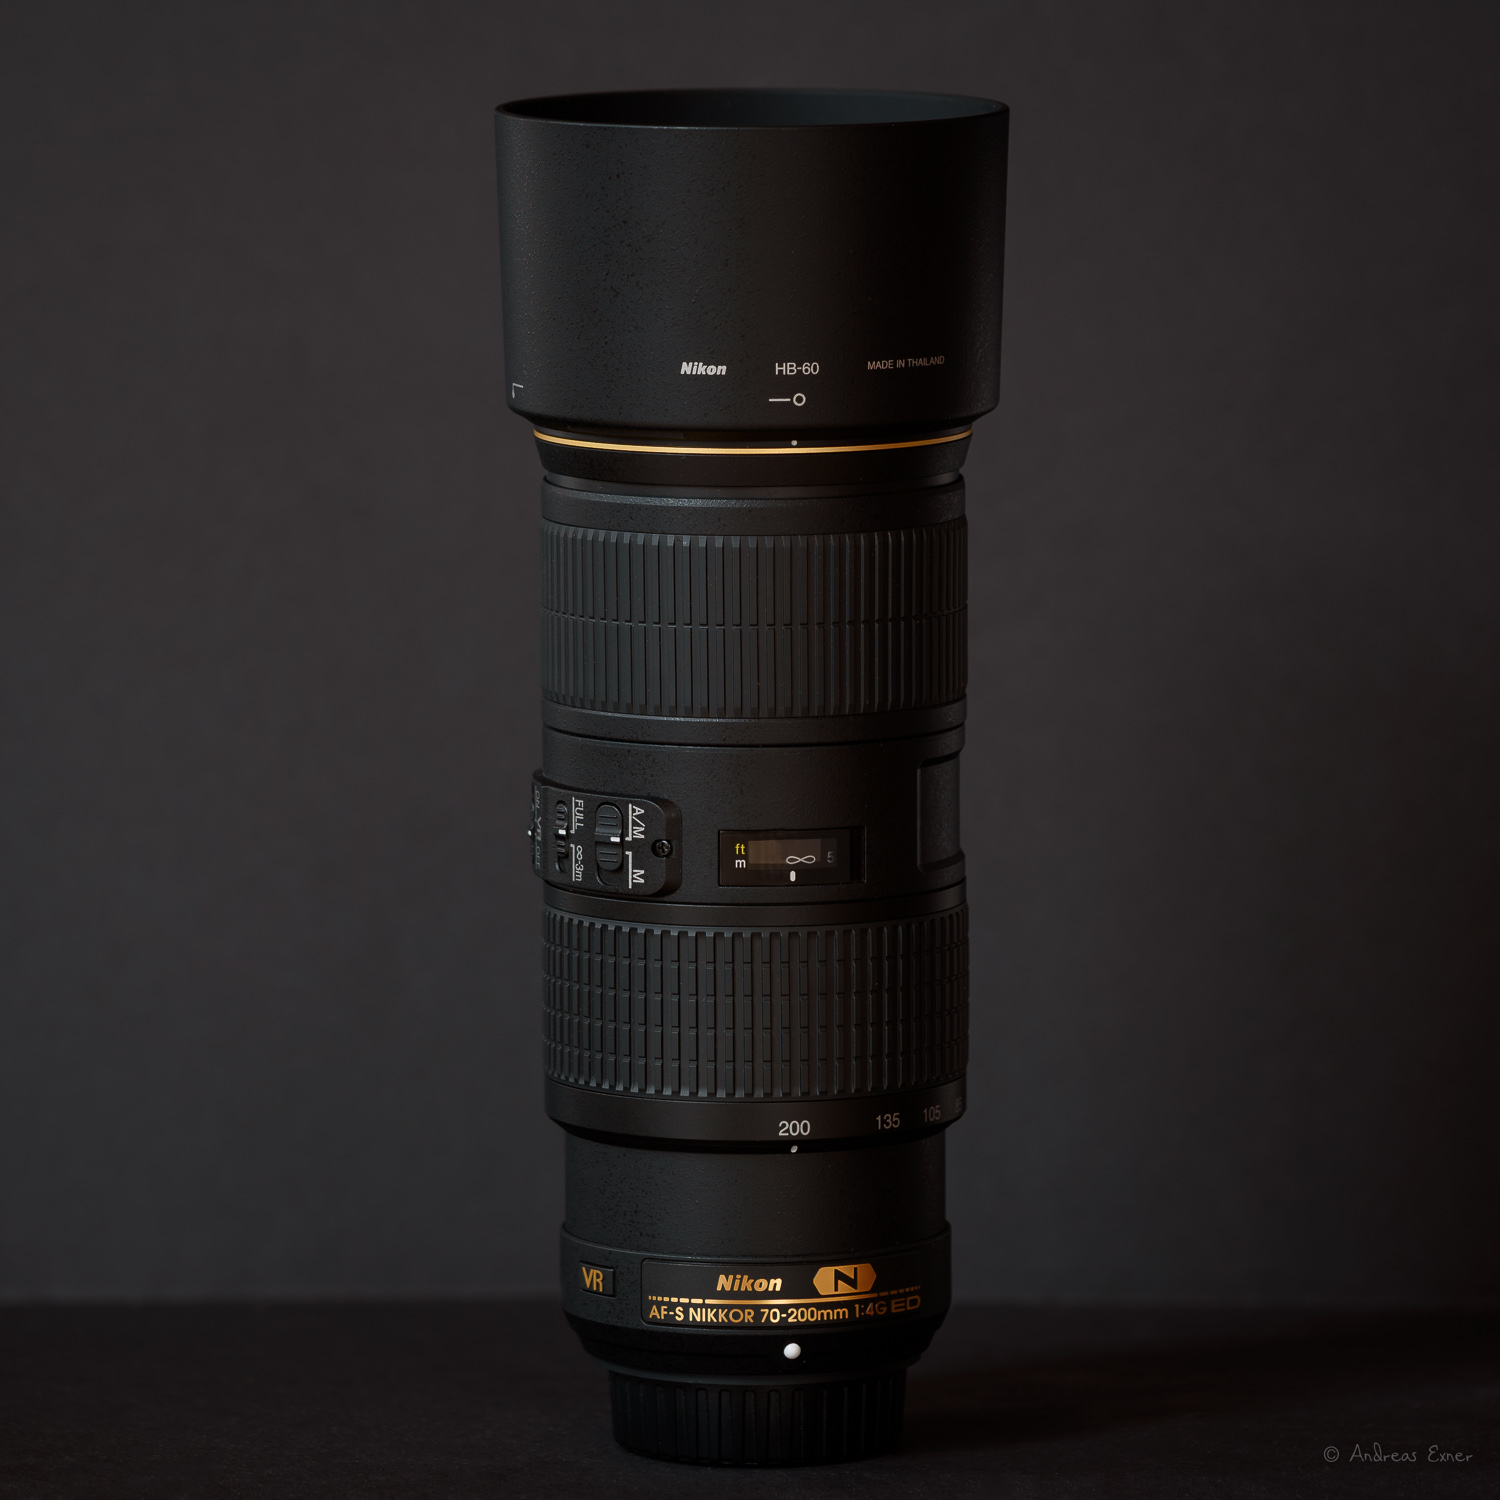 Nikon AF-S Nikkor 70-200mm, f/4G ED VR  I have acquired this lens mainly for my landscape photography but its light weight makes it very versatile and I started using it for wildlife as well. Sharp and fast focus.  ★ ★ ★ ★ ★